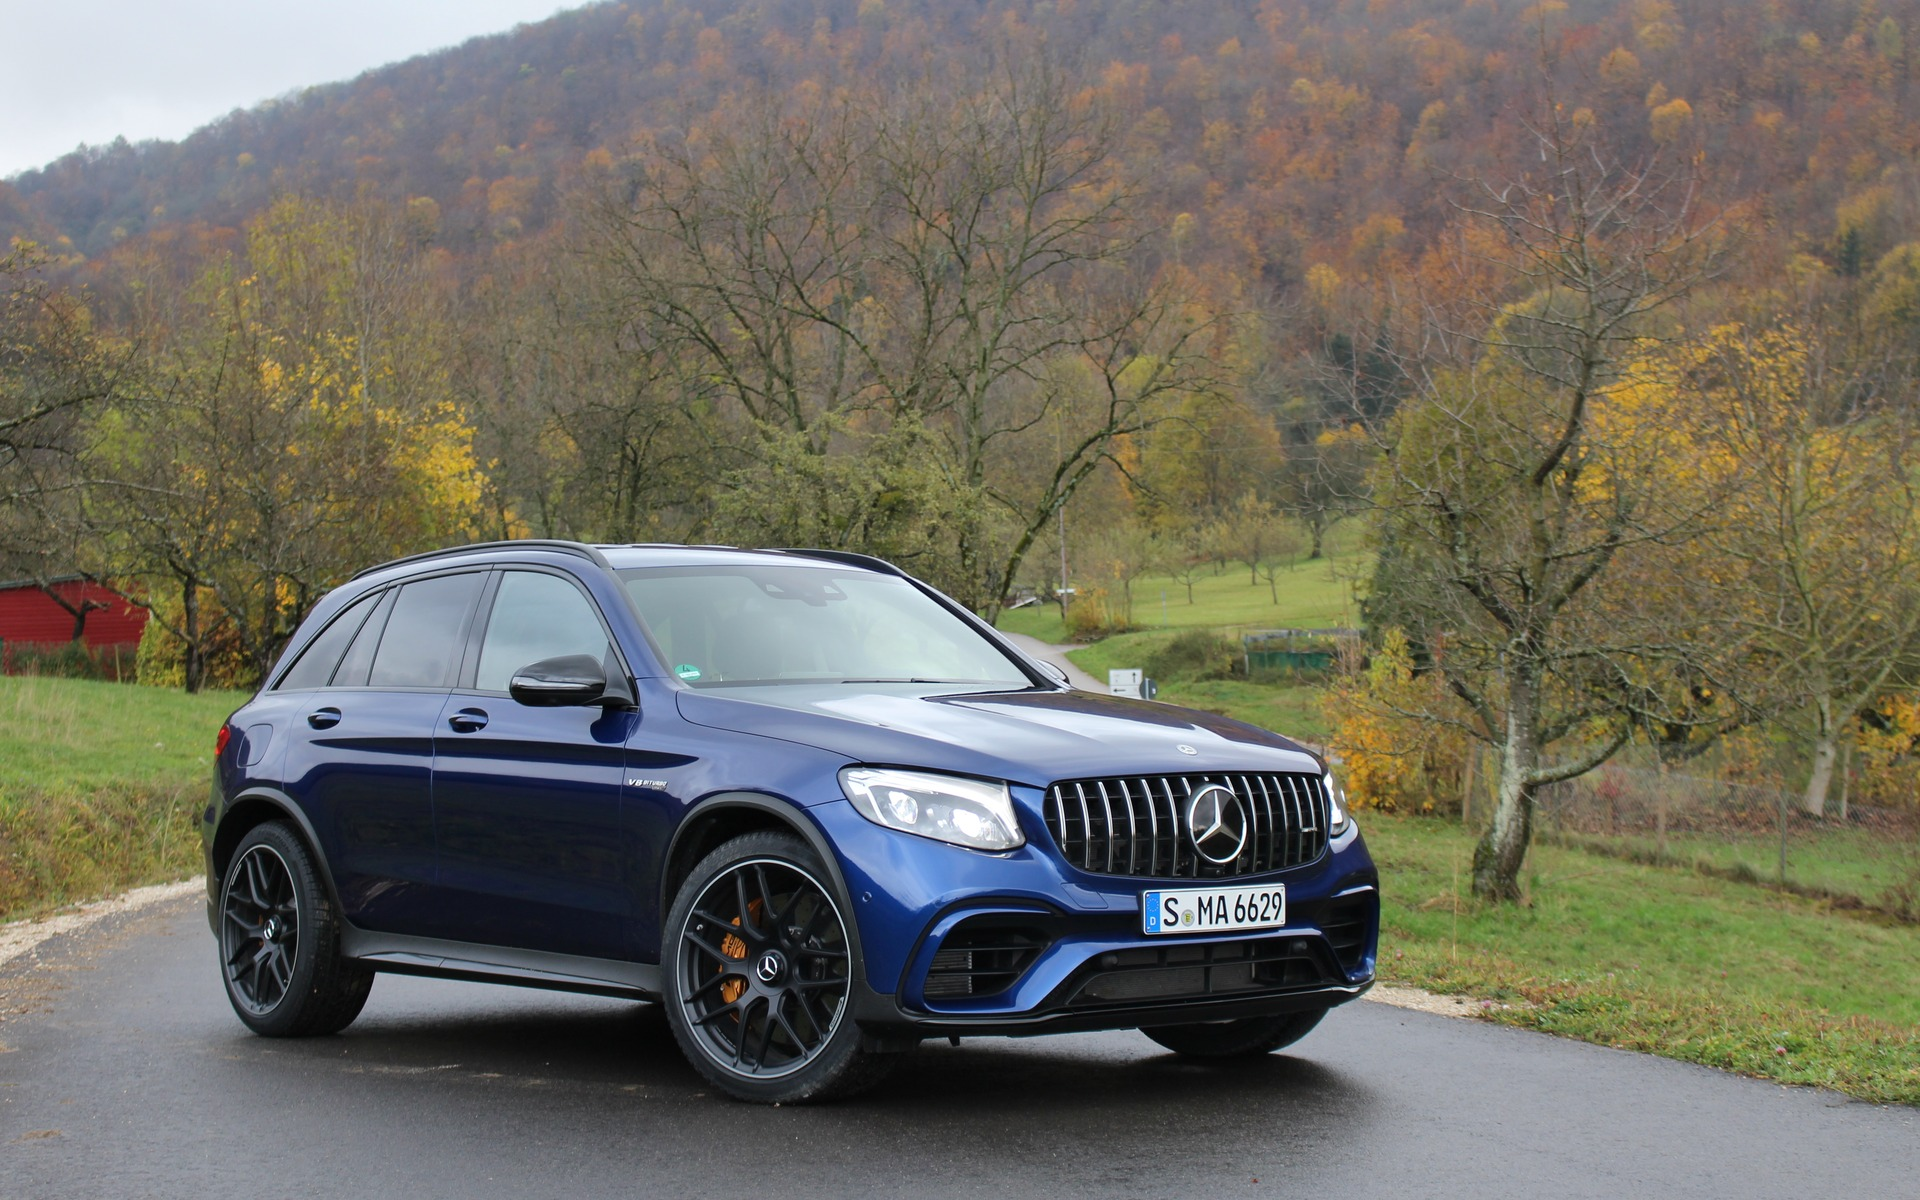 2018 Mercedes Amg Glc 63 S 4matic The Family Missile The Car Guide